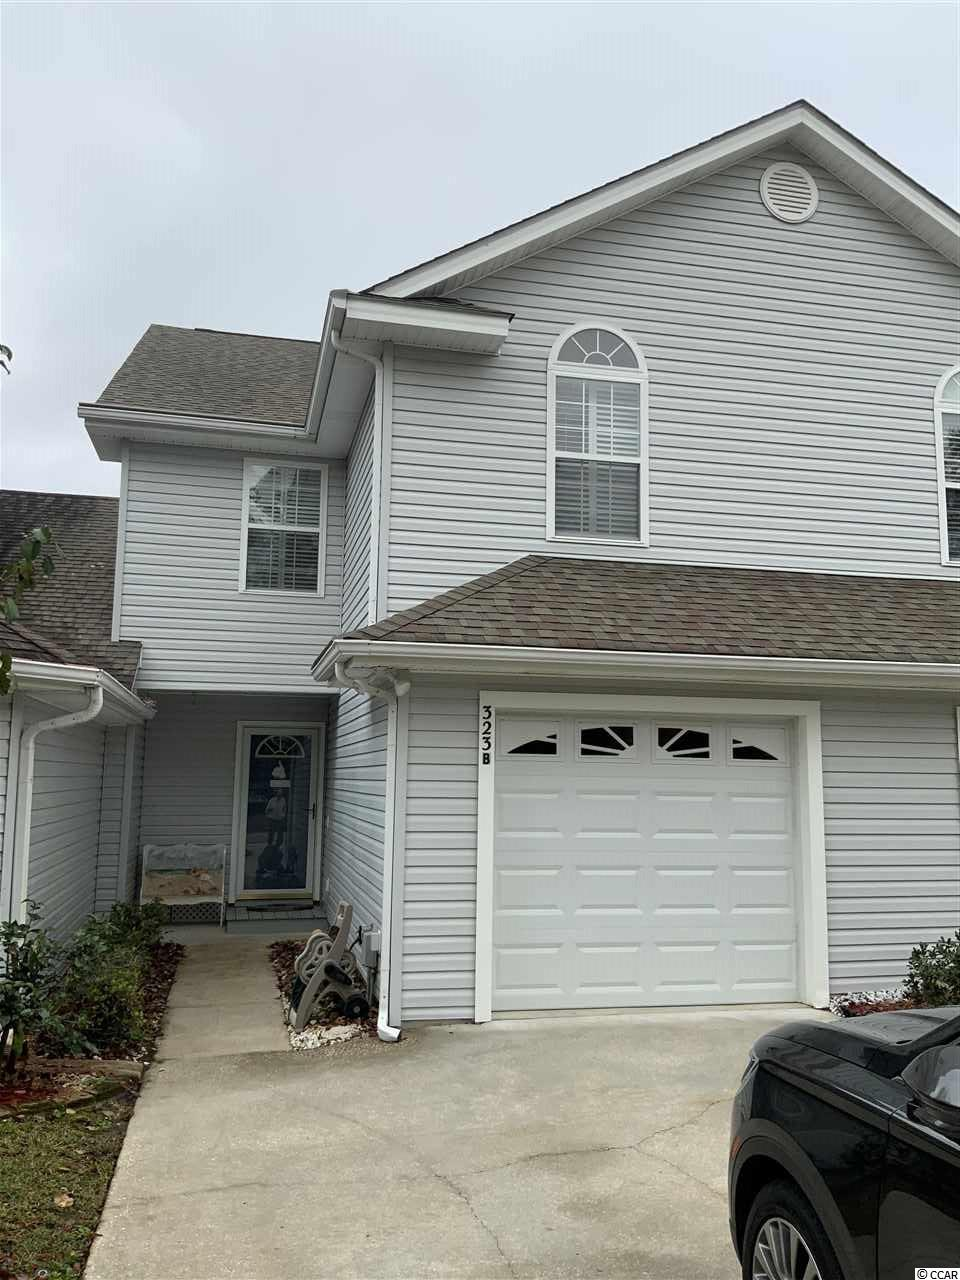 This townhouse has one owner and never been rented.  It is in great condition with 2015 roof and new HVAC in May 2020.  It might need a few updates, but is in pristine condition.  Has a one car garage, and is just a few blocks from the beach.  A perfect permanent residence or a second home getaway to the beach.